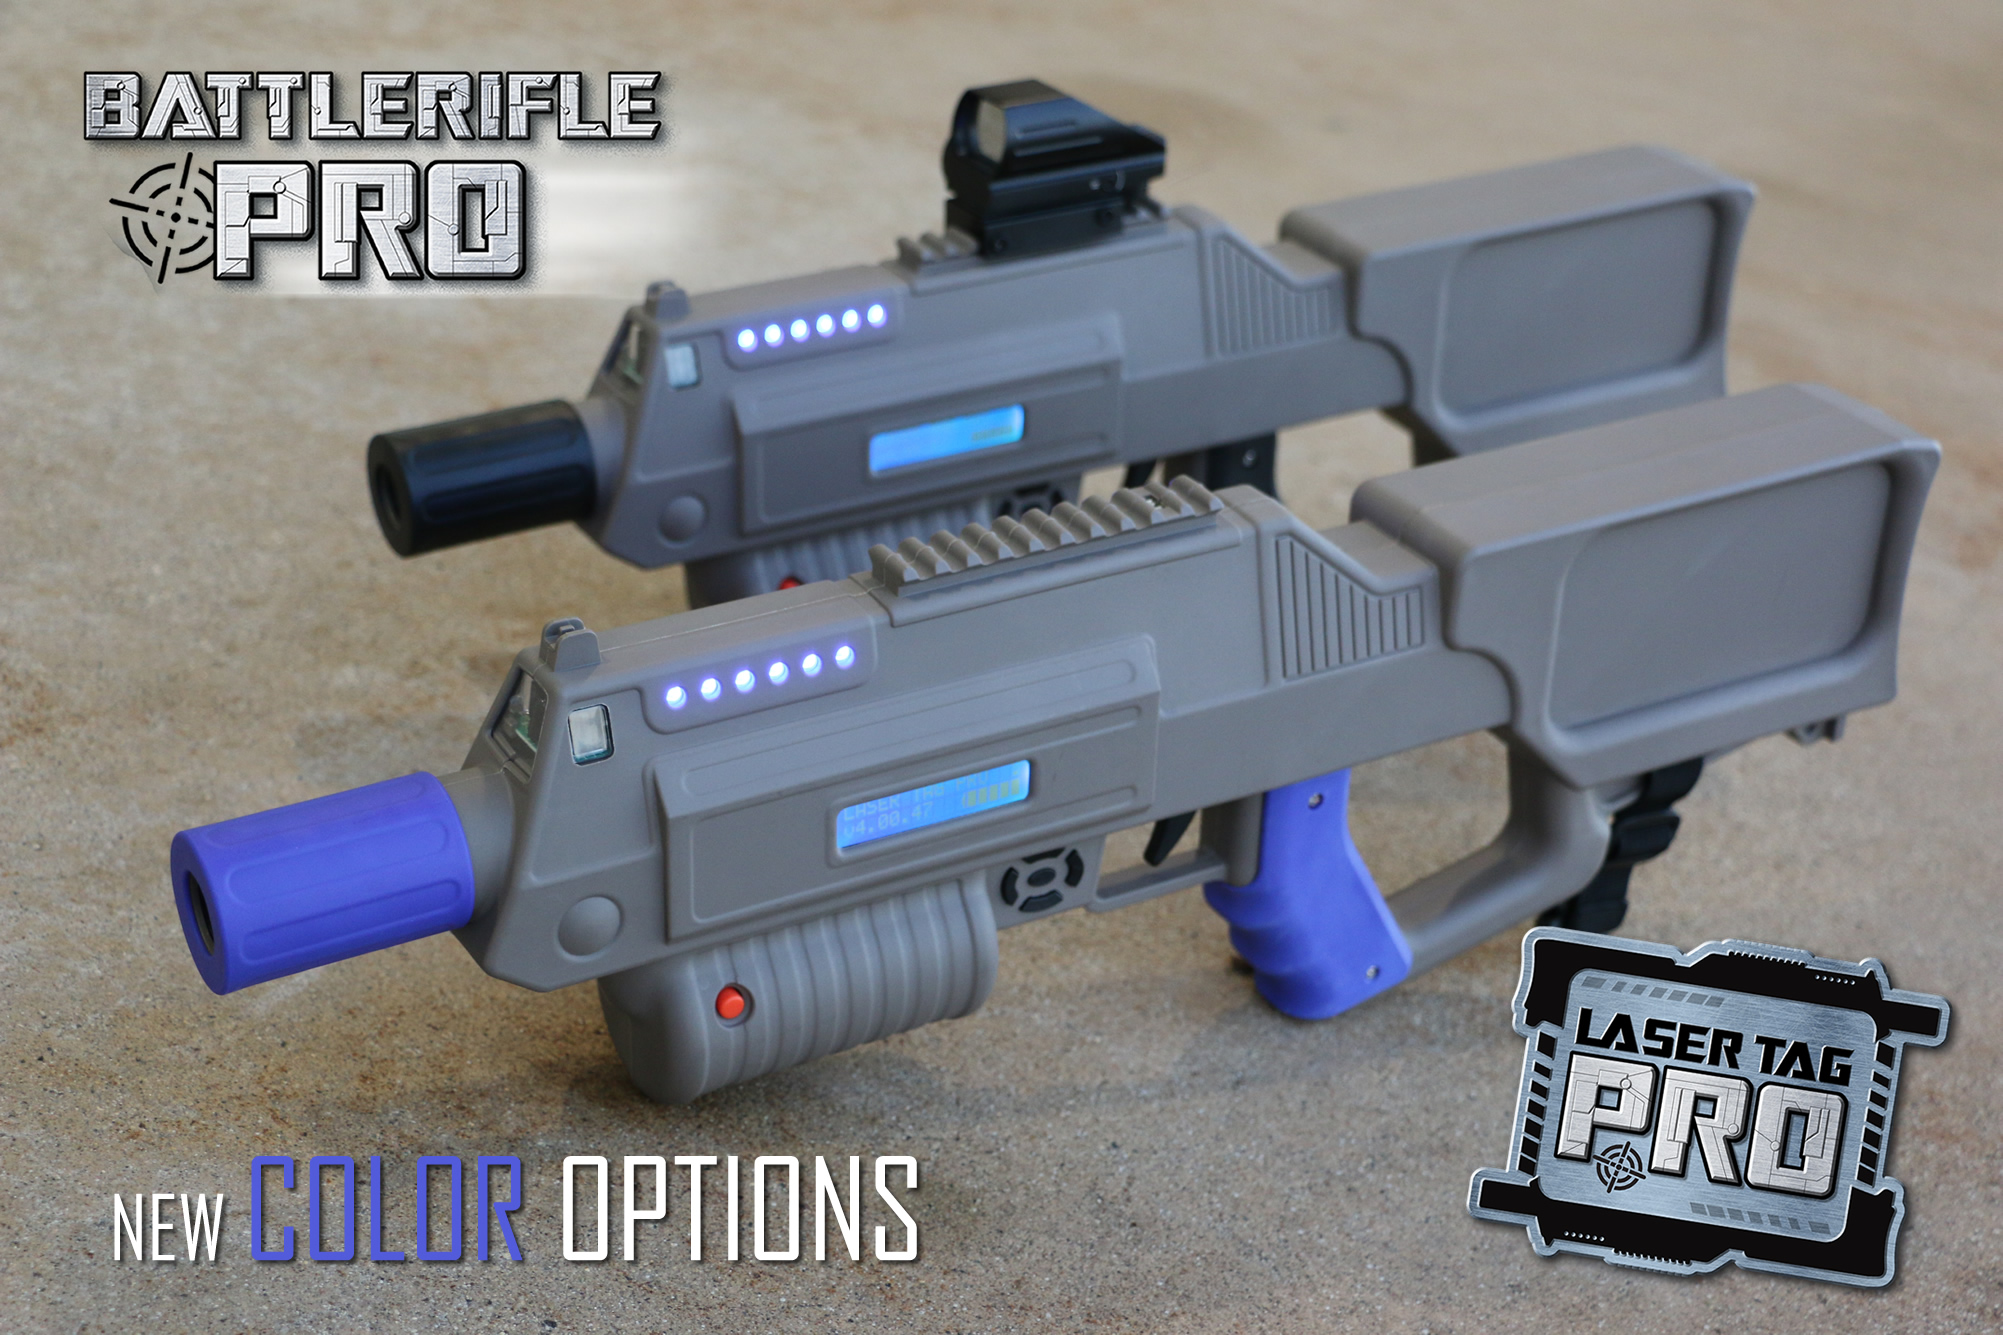 Laser Tag Pro Equipment Can Come In Diffe Colors Variations How About Changing It Up With Gray Colored Grips